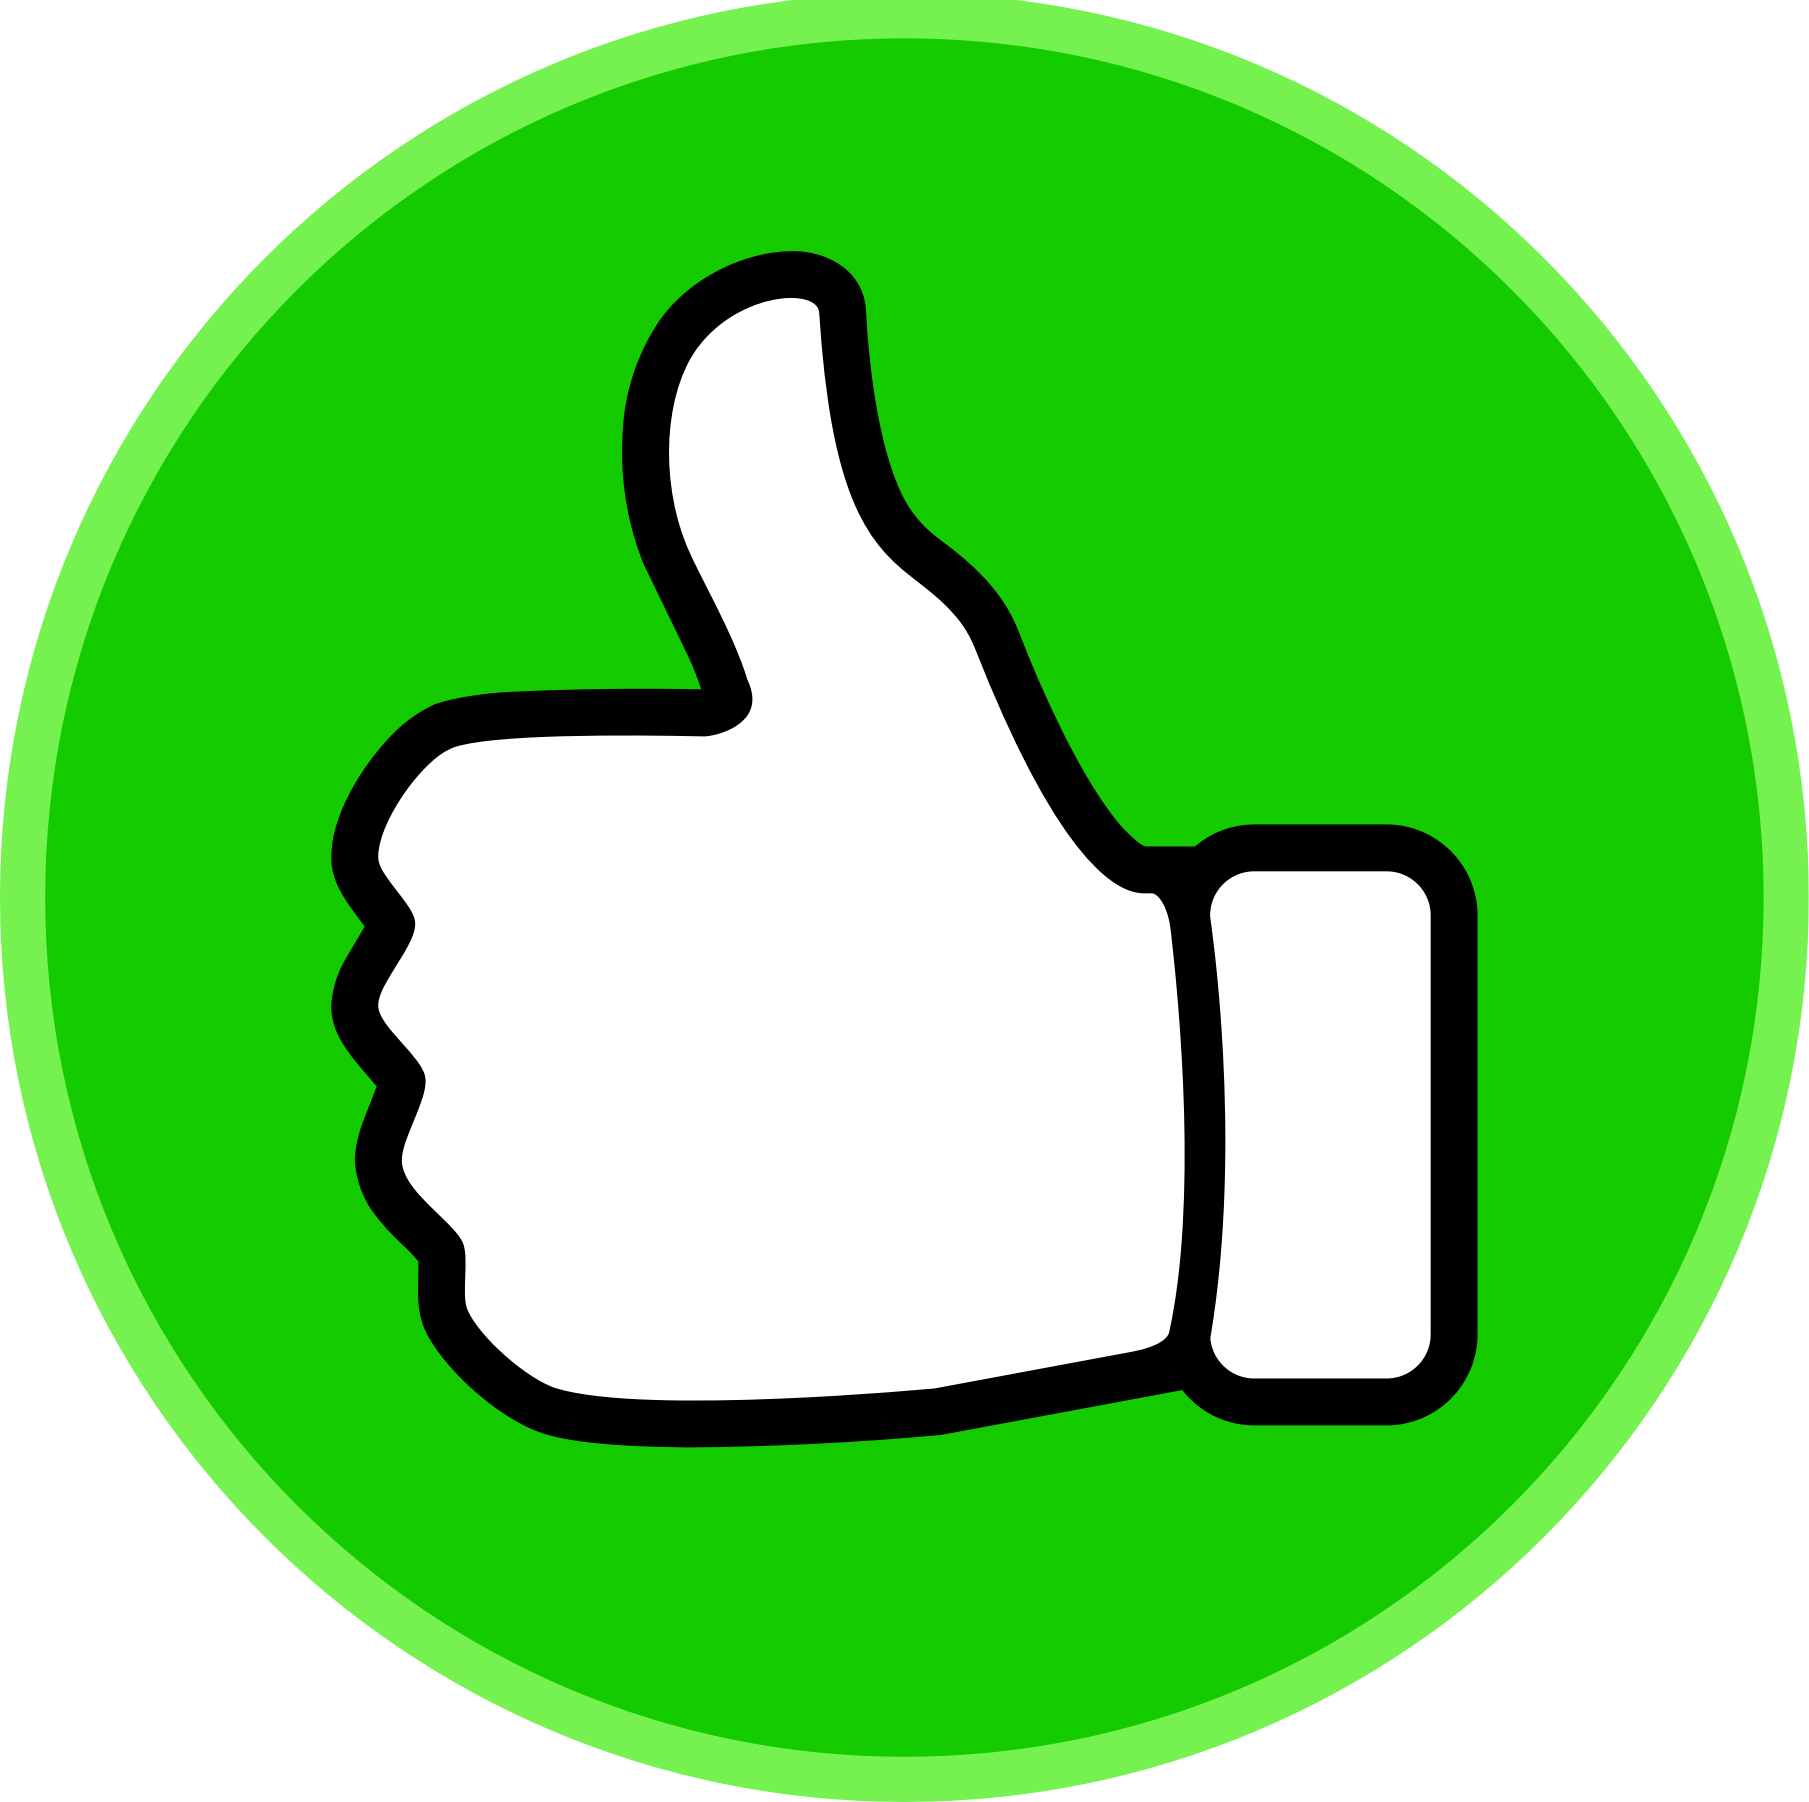 Thumbs up clipart microsoft svg royalty free stock Free Thumbs Up Clipart - clipartsgram.com svg royalty free stock